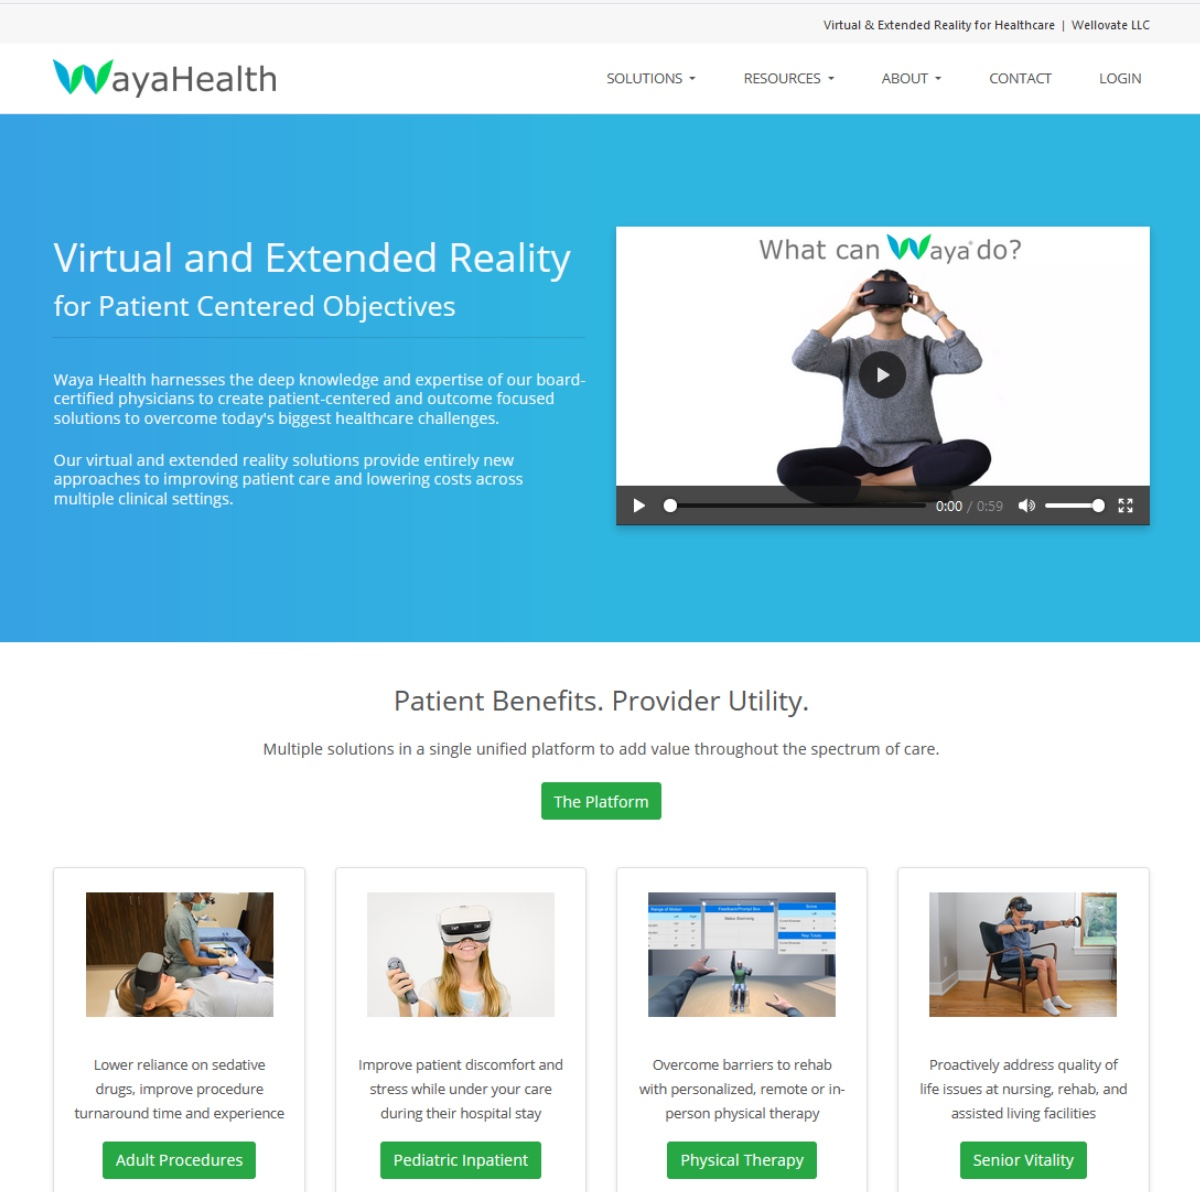 Wayahealth Solution